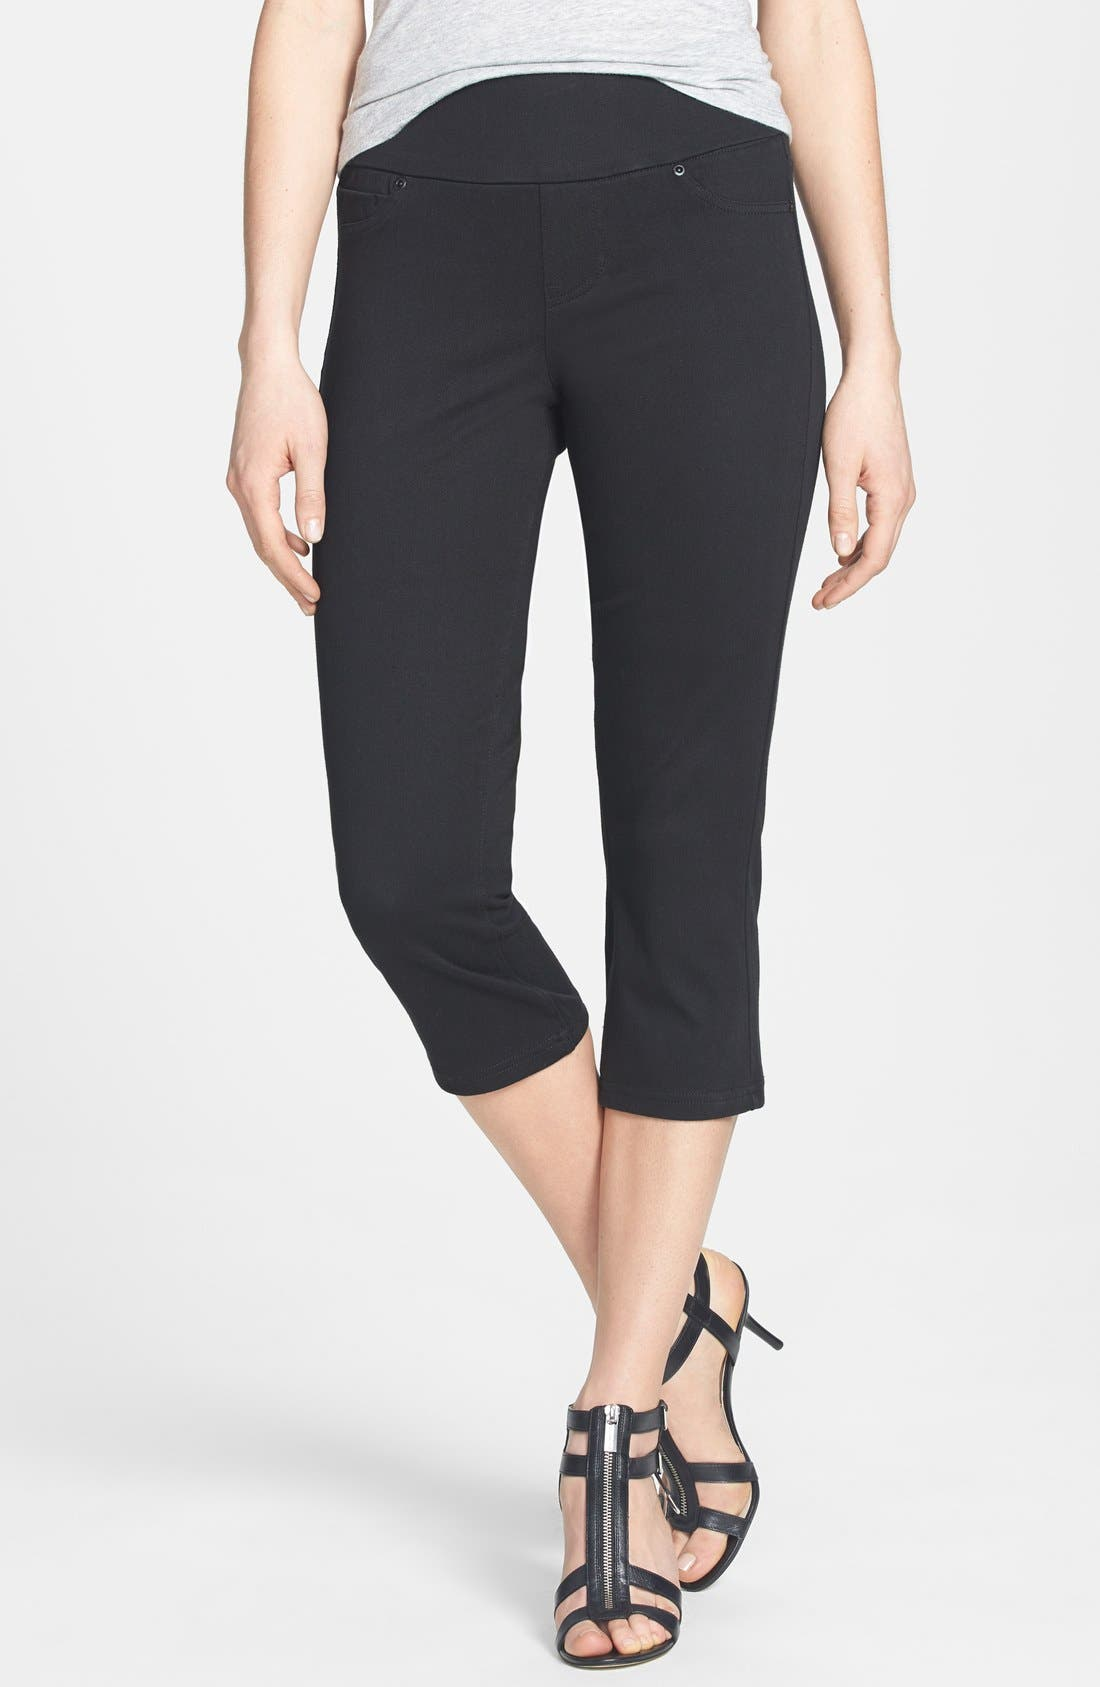 Alternate Image 1 Selected - Liverpool Jeans Company 'Sienna' Stretch Twill Capri Leggings